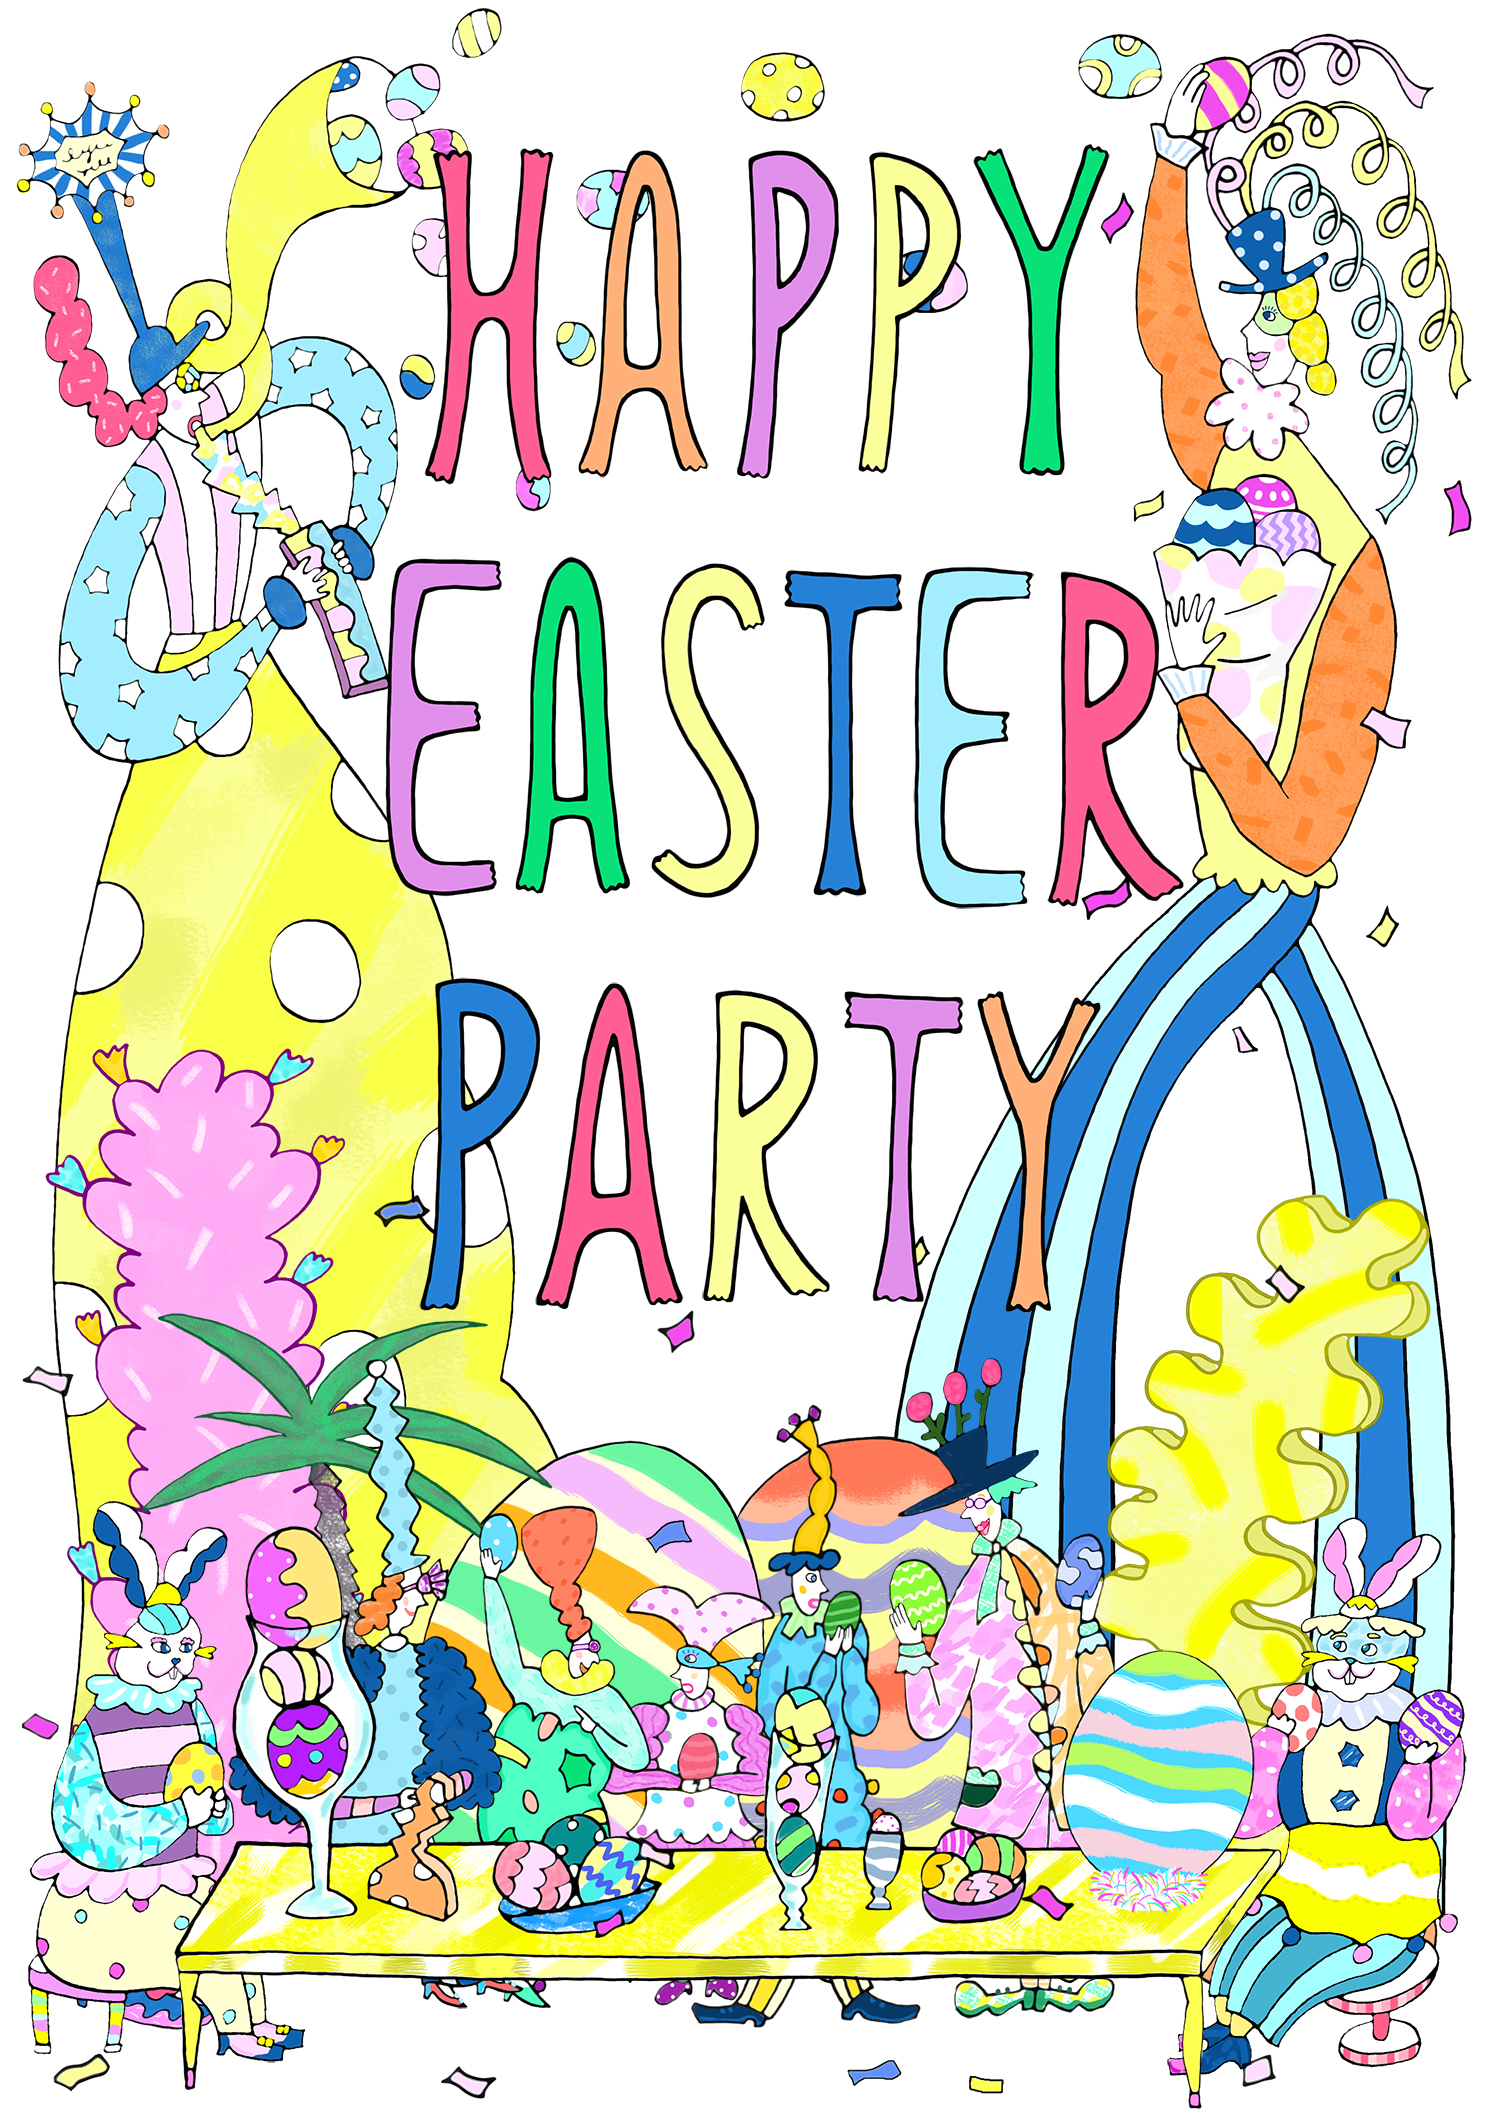 阪急百貨店「HAPPY EASTER PARTY」